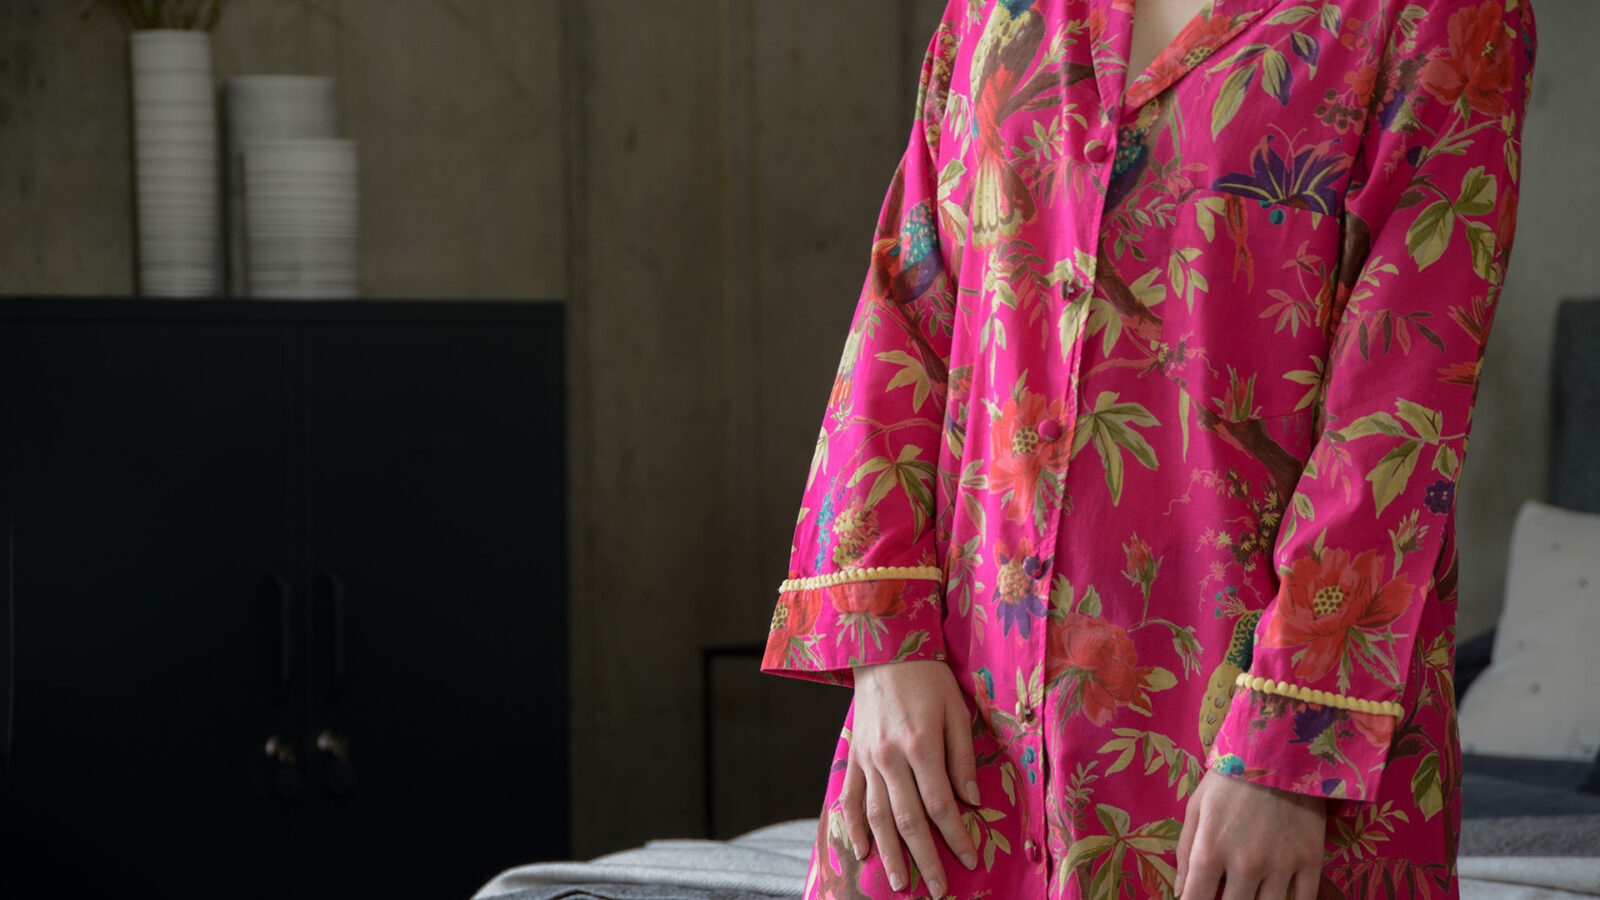 vibrant pink chinoiserie print light cotton nightshirt with bobble detail cuffs